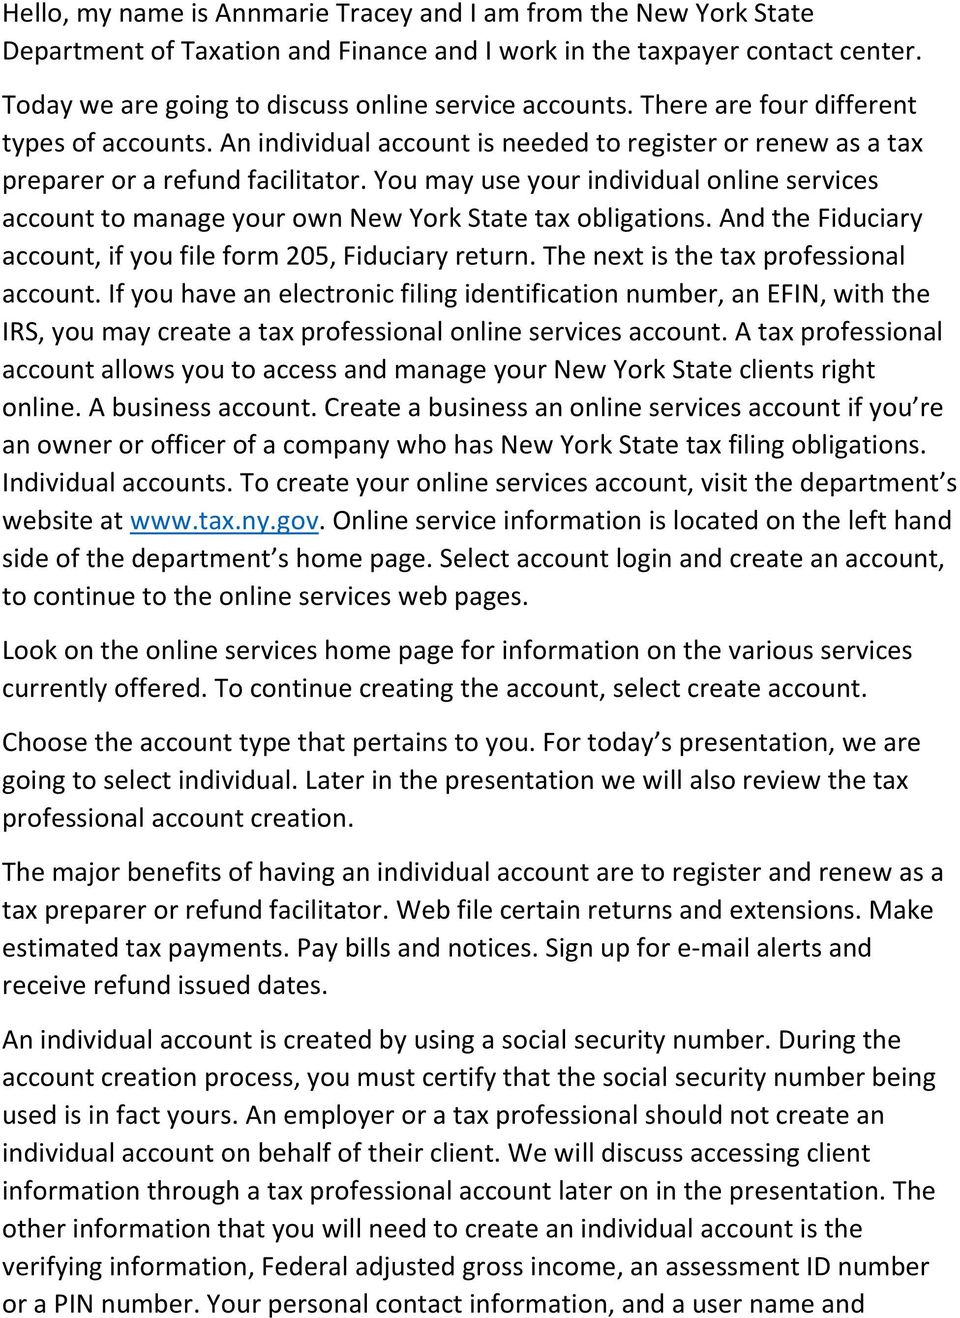 You may use your individual online services account to manage your own New York State tax obligations. And the Fiduciary account, if you file form 205, Fiduciary return.